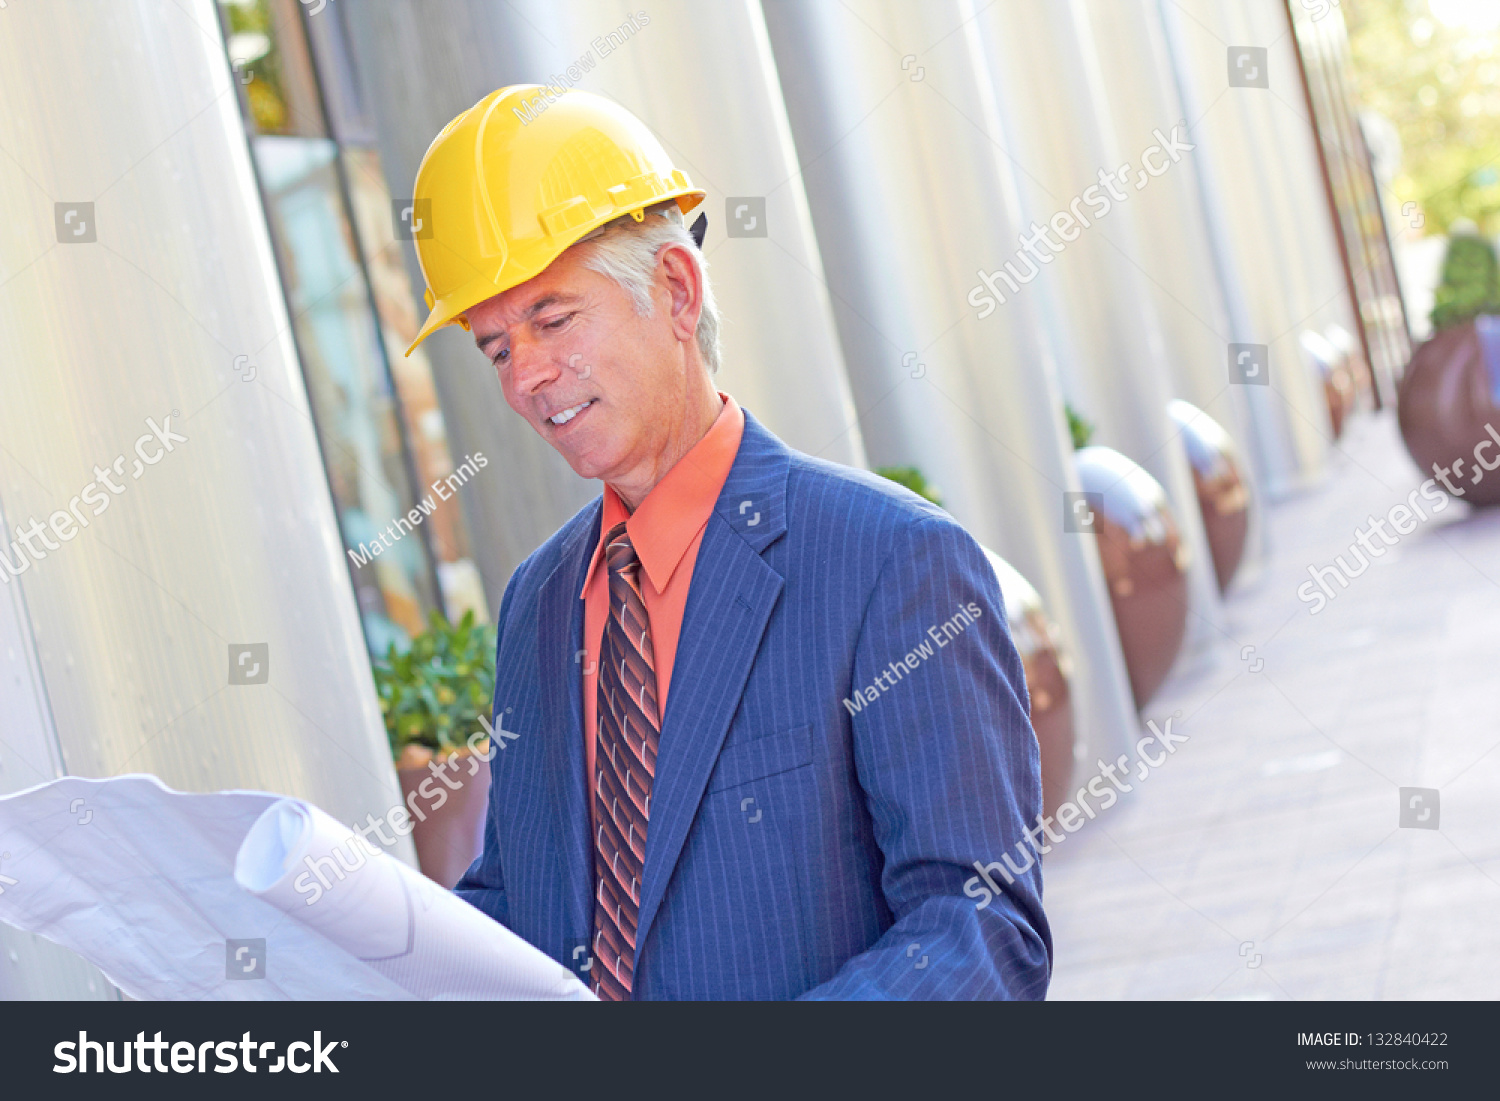 Mature Construction Foreman Looking Up While Holding Blueprint. Horizontal Shot. Stock Photo 132840422 : Shutterstock